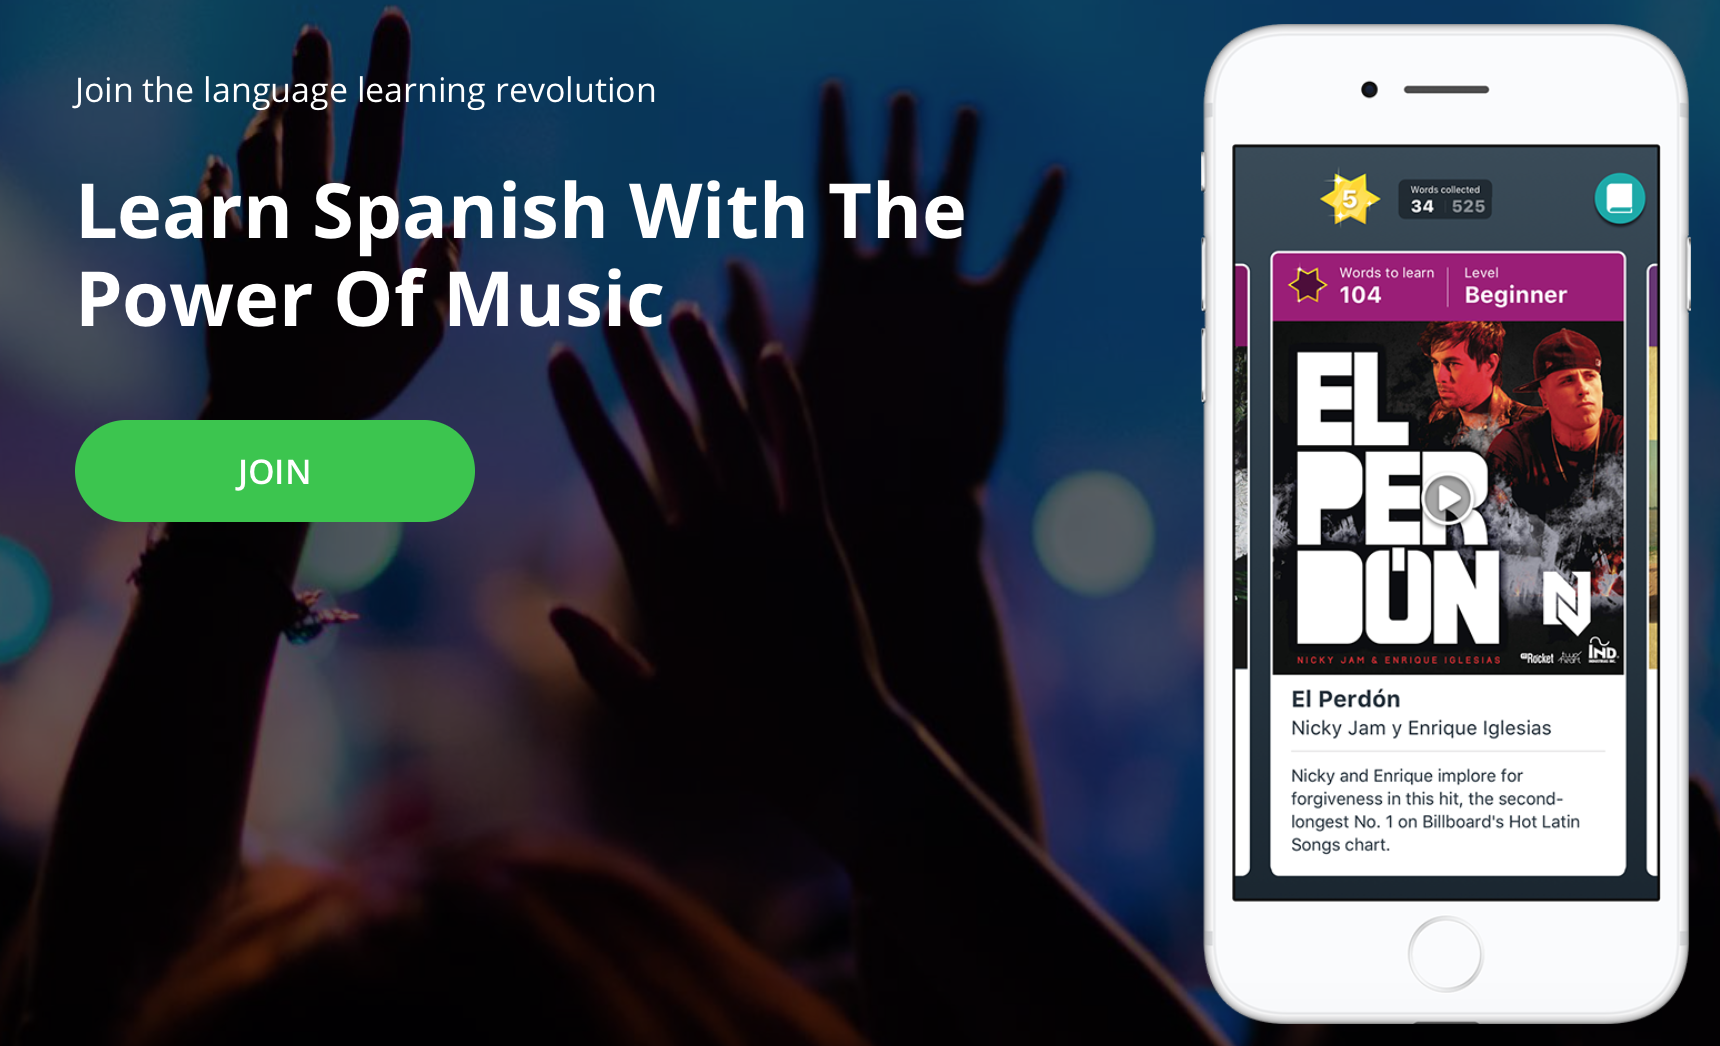 lyrica app to learn Spanish